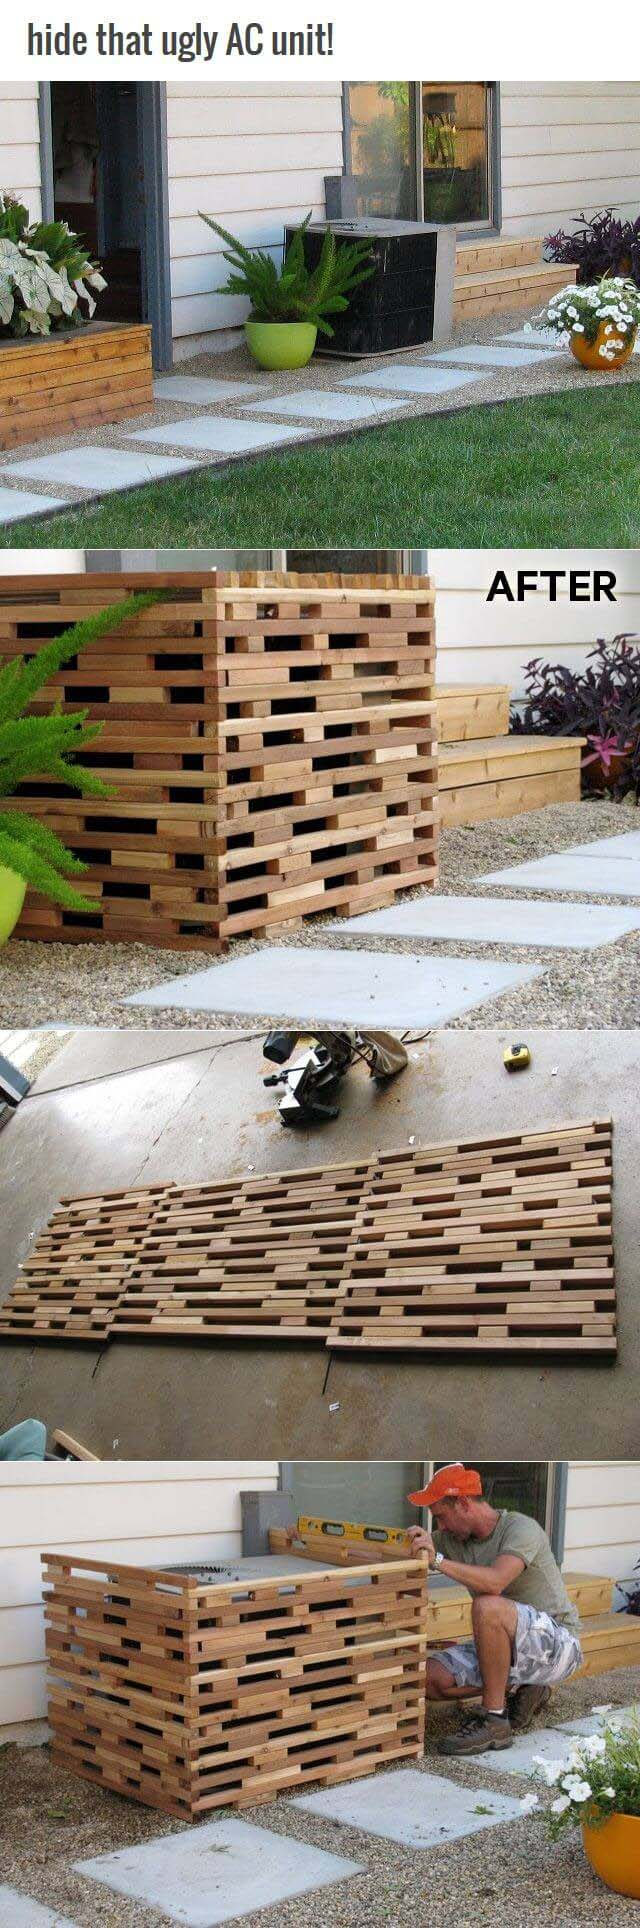 Modern Design Wooden AC Unit Screen #outdoor #hiding #ideas #decorhomeideas